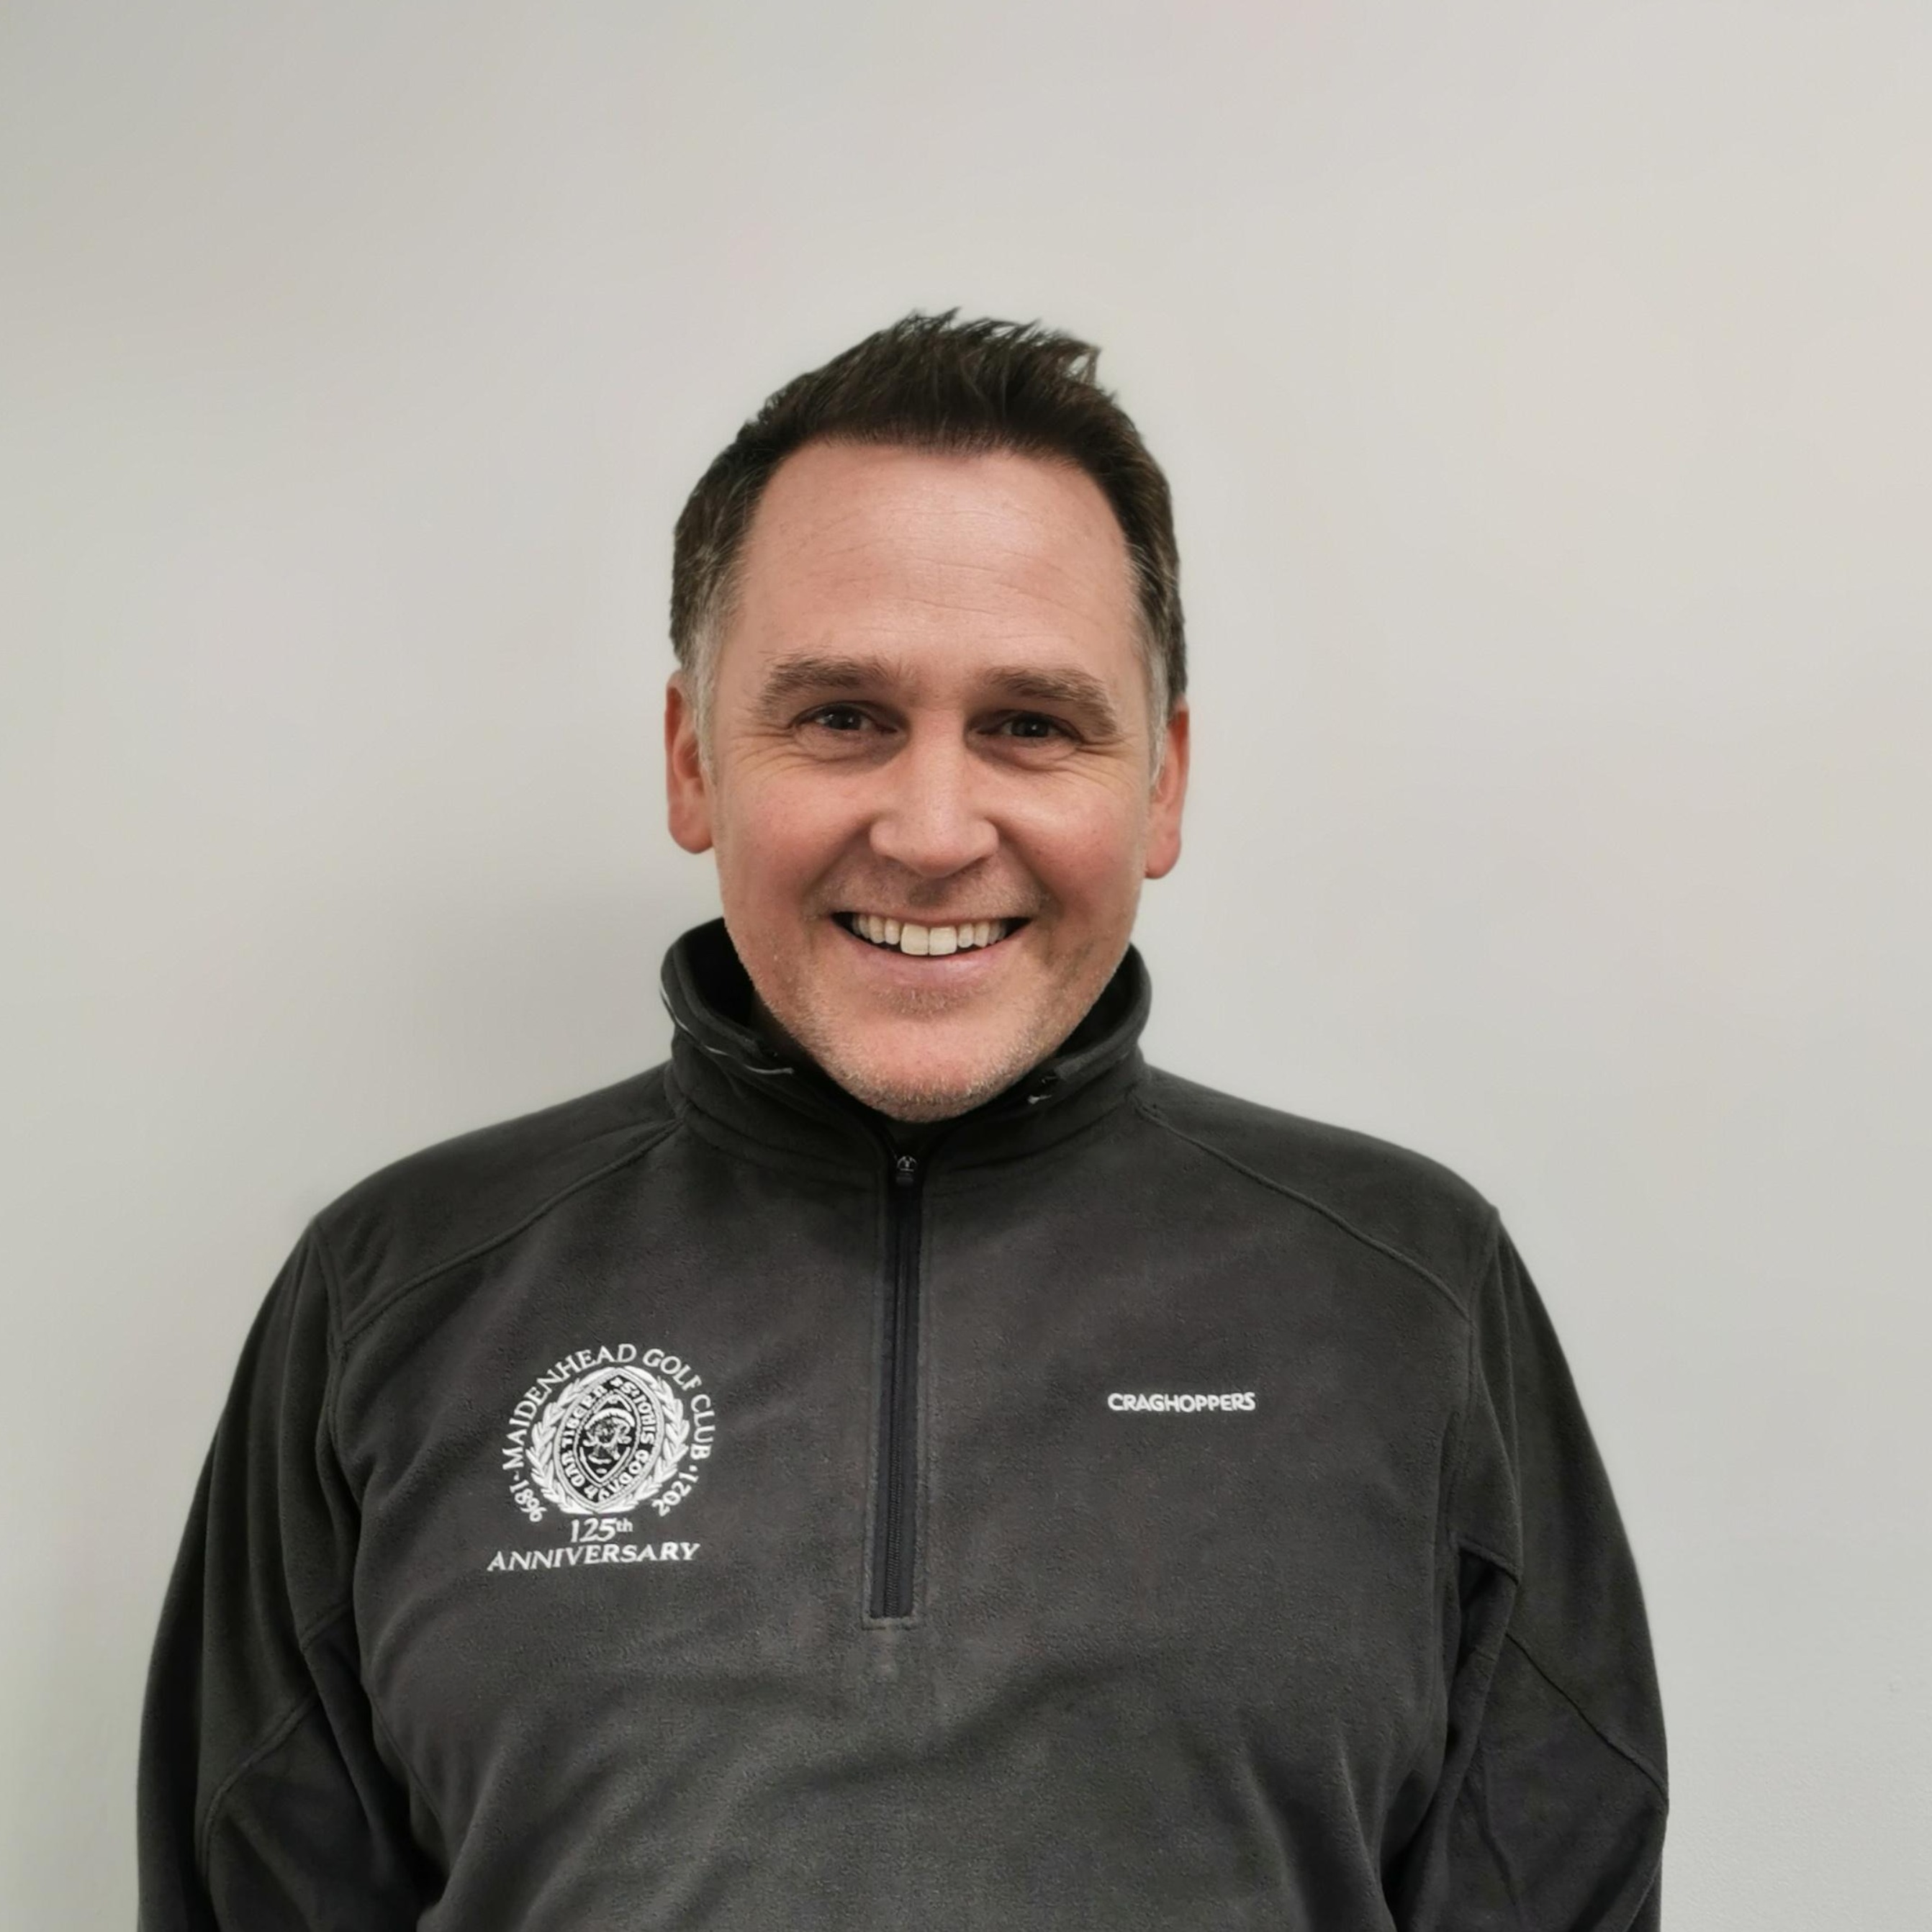 Barry Gardner - Course Manager